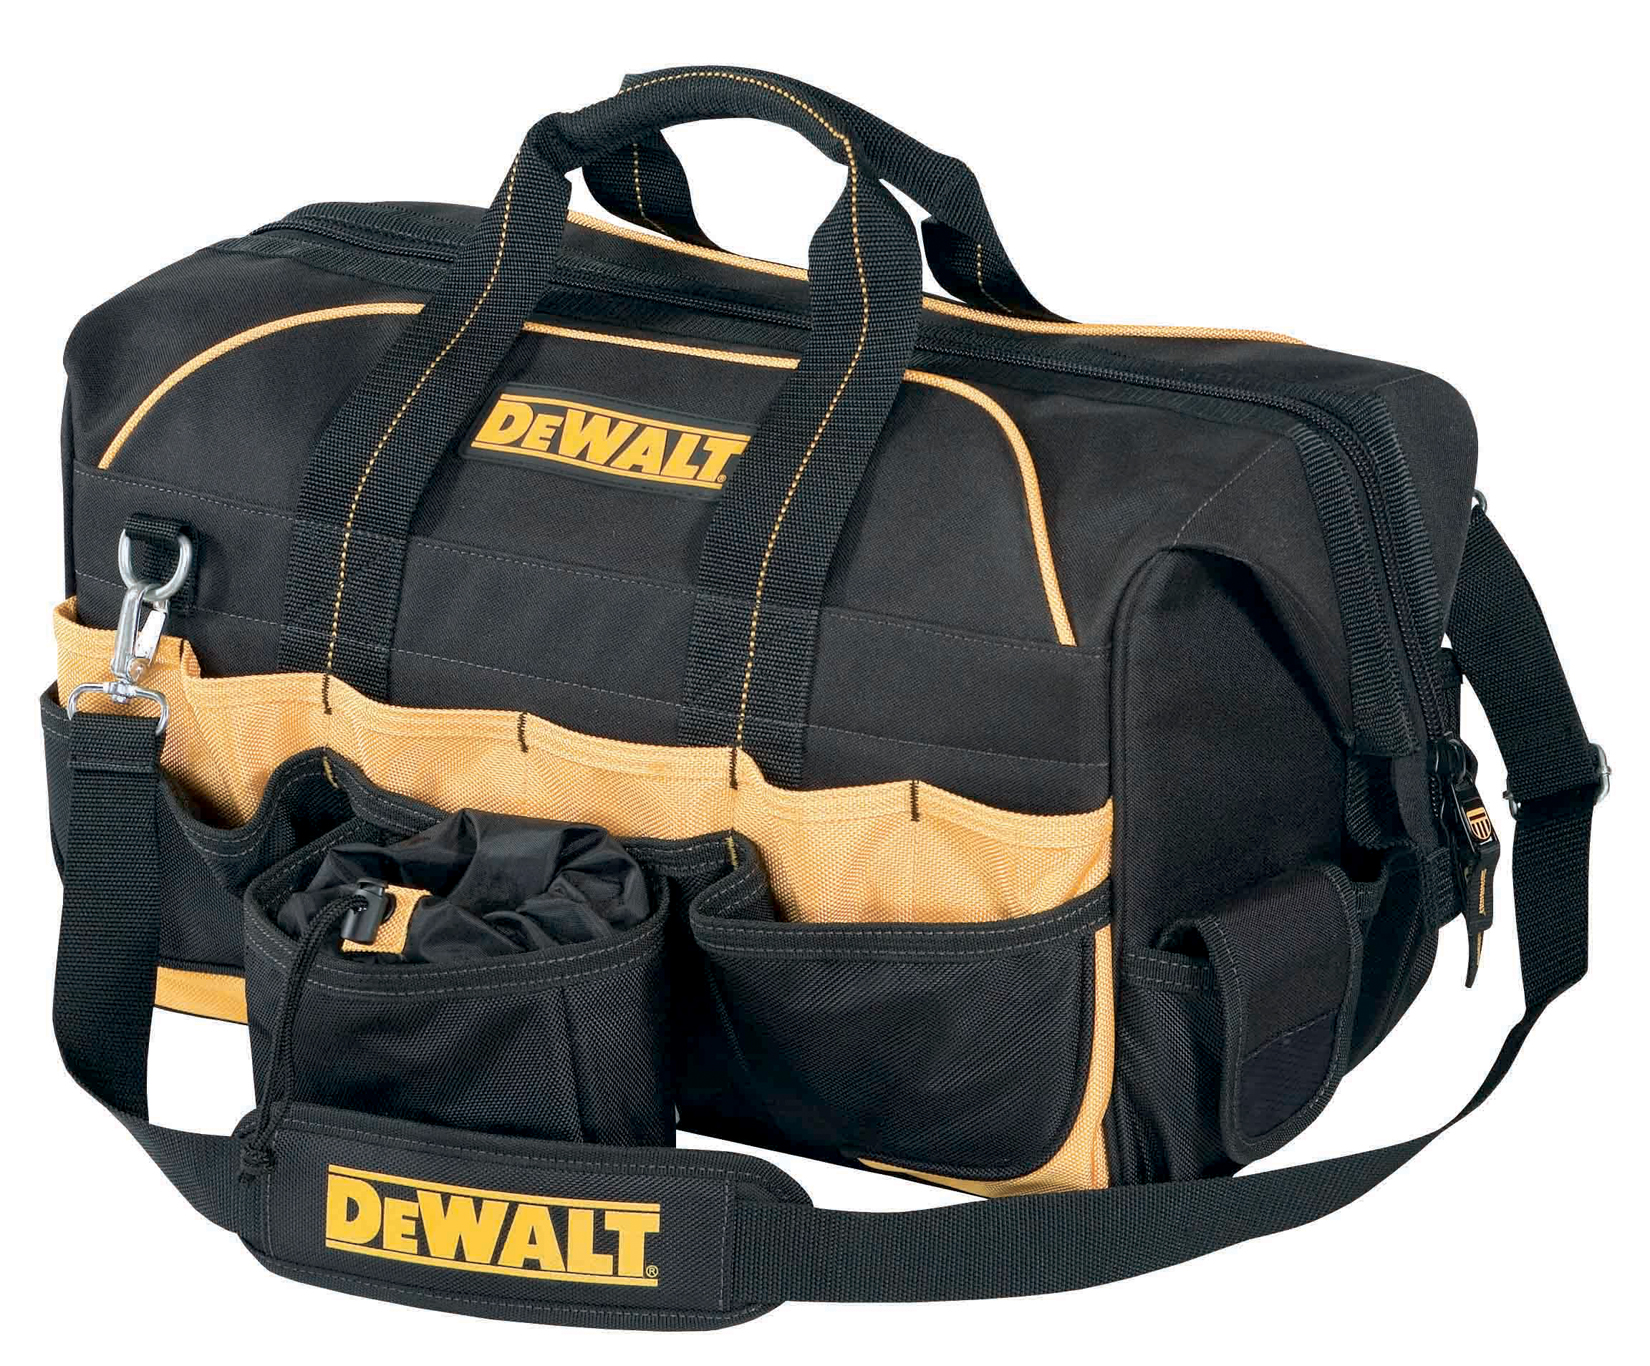 Dewalt Tool Bag